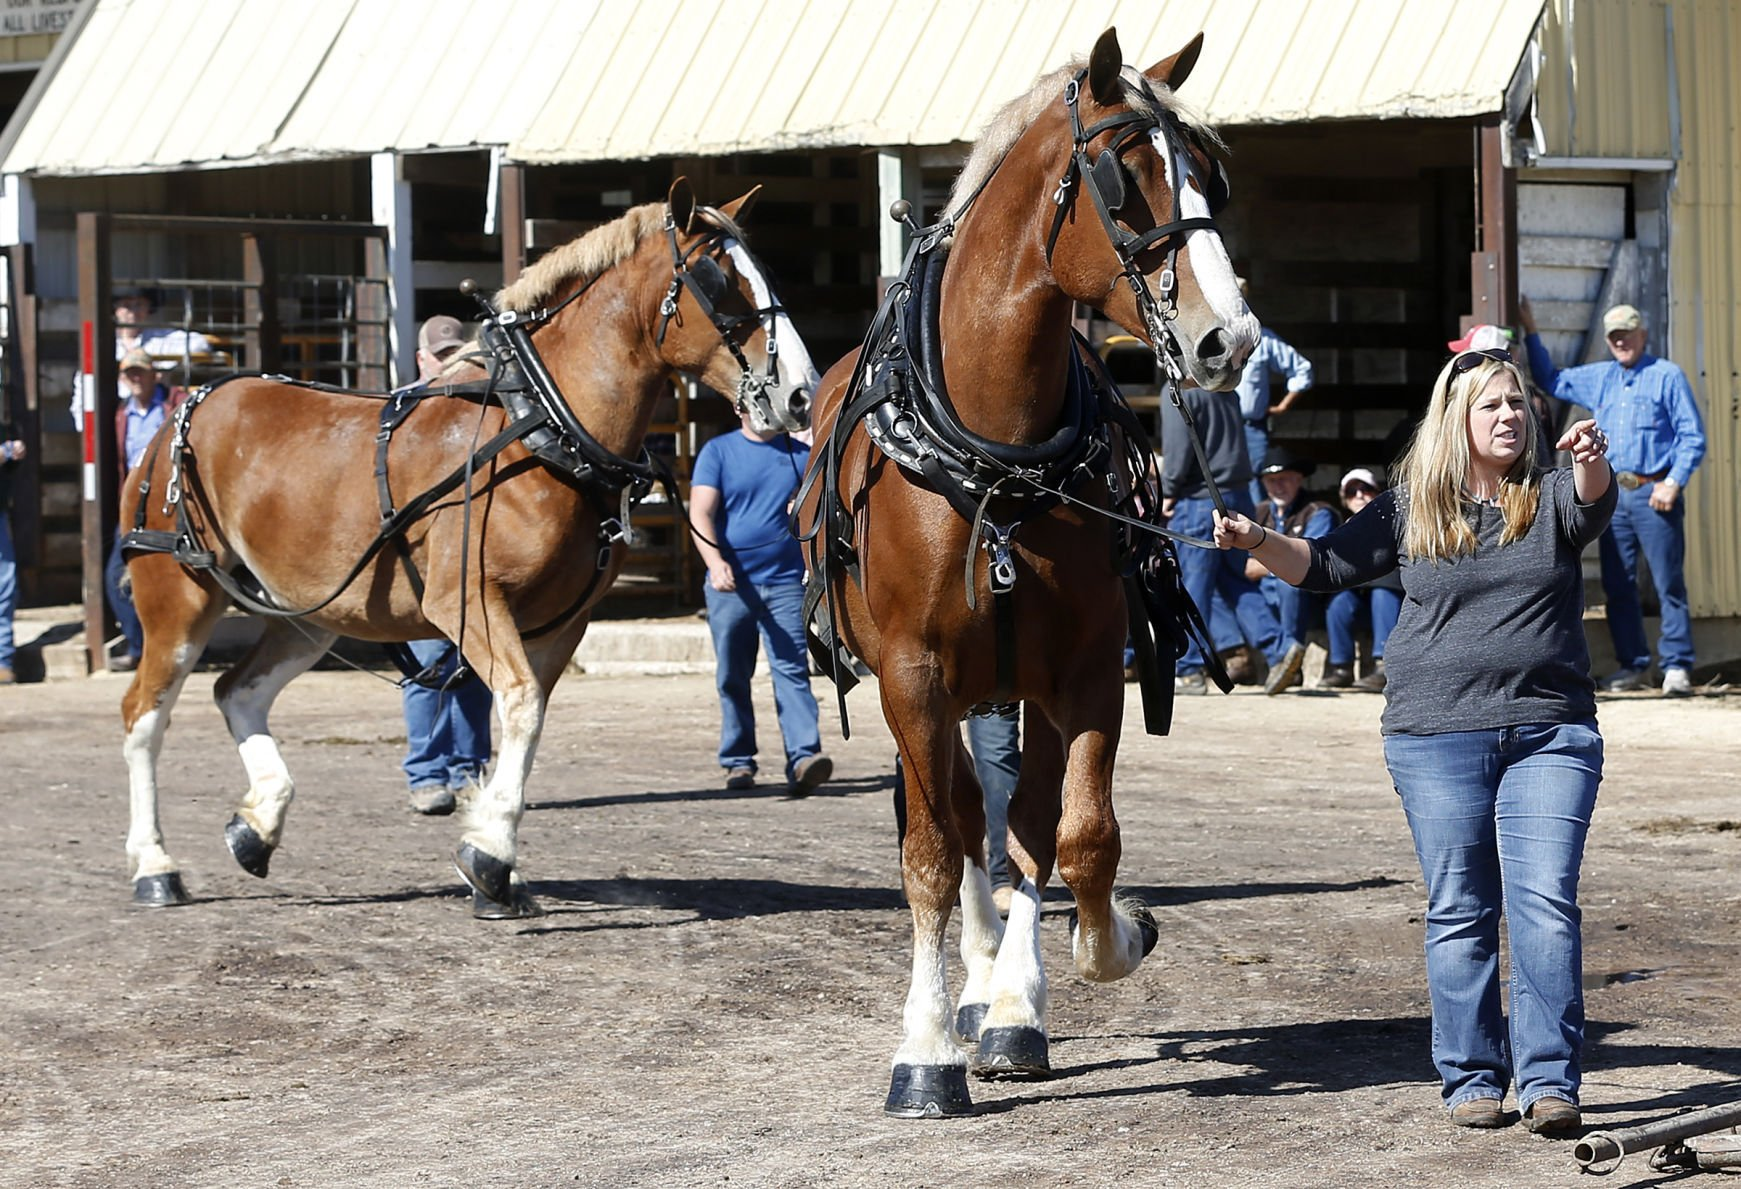 Horses Draw Crowds At Waverly Sale Local News Wcfcourier Com